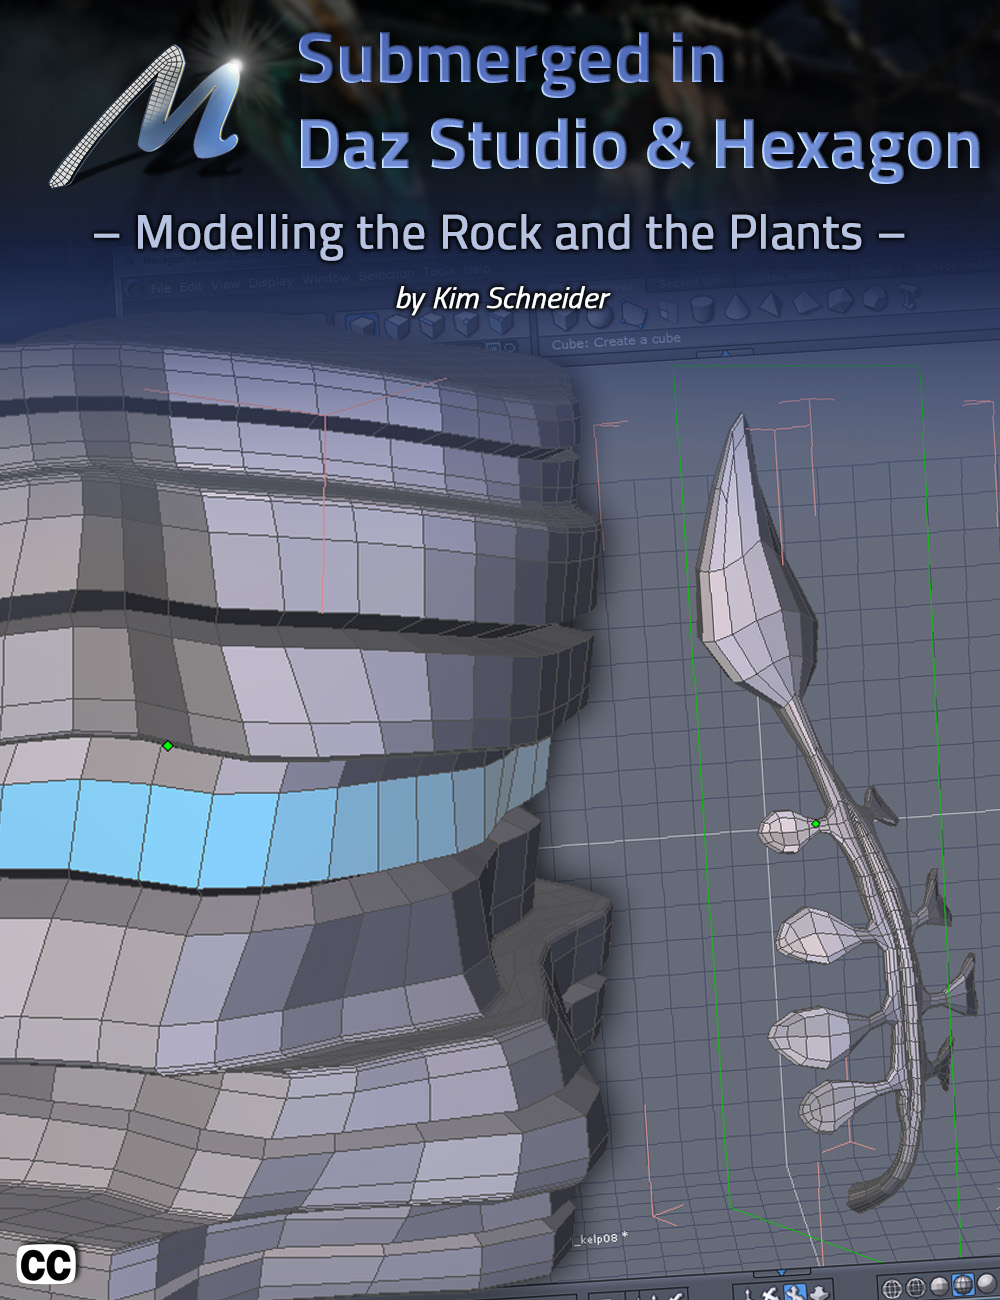 Submerged inside Hexagon and Daz Studio - Part 1: Modeling the Rocks and the Plants by: CganArki, 3D Models by Daz 3D